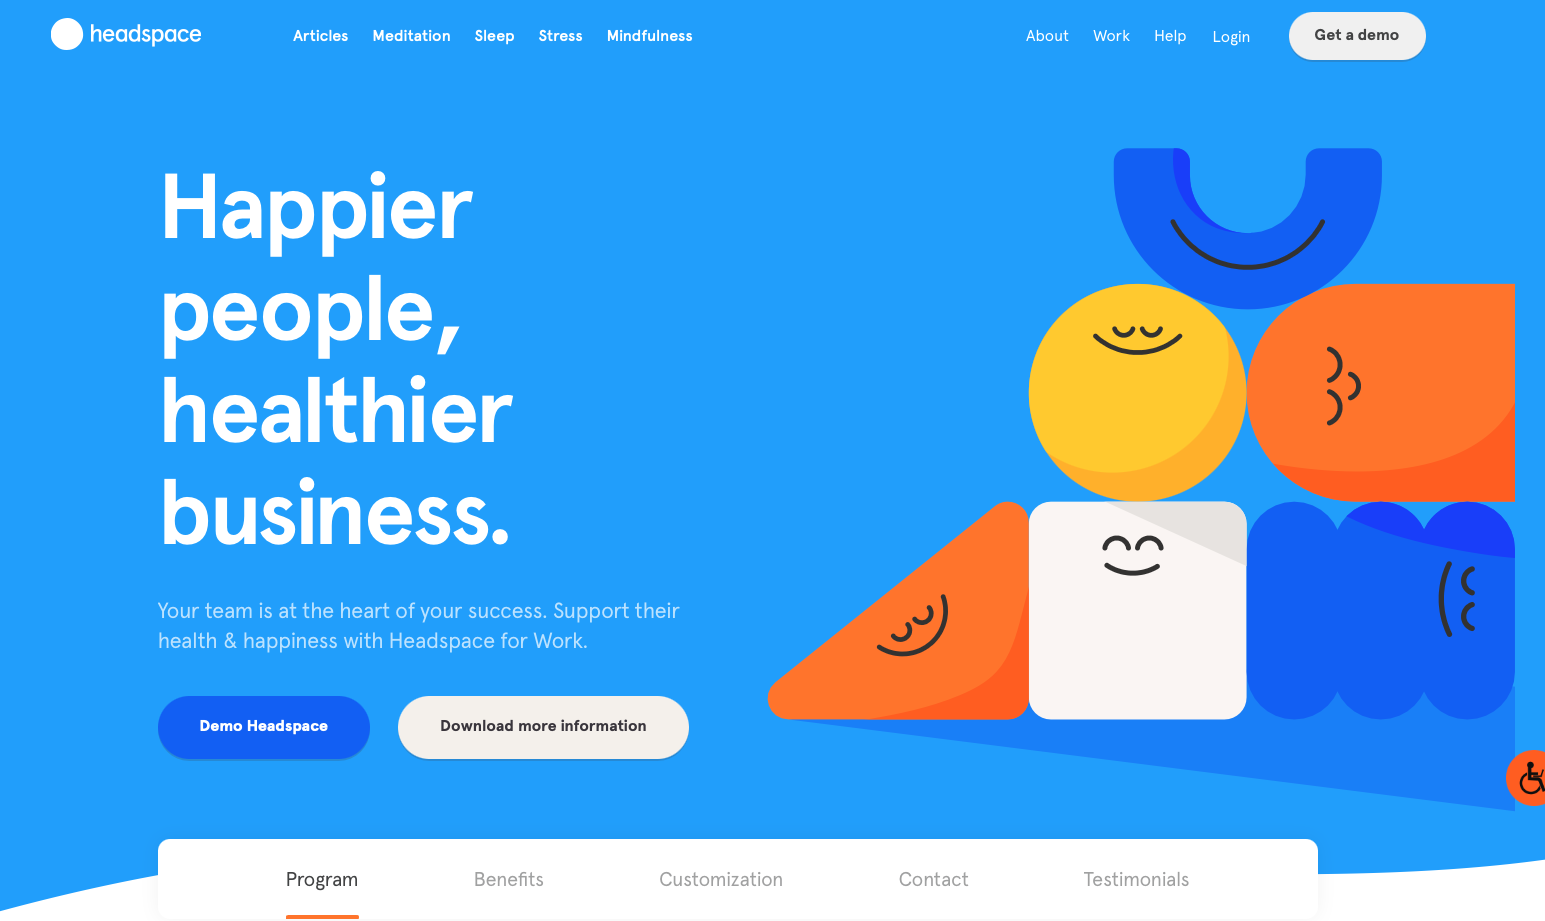 Headspace's healthier business promise